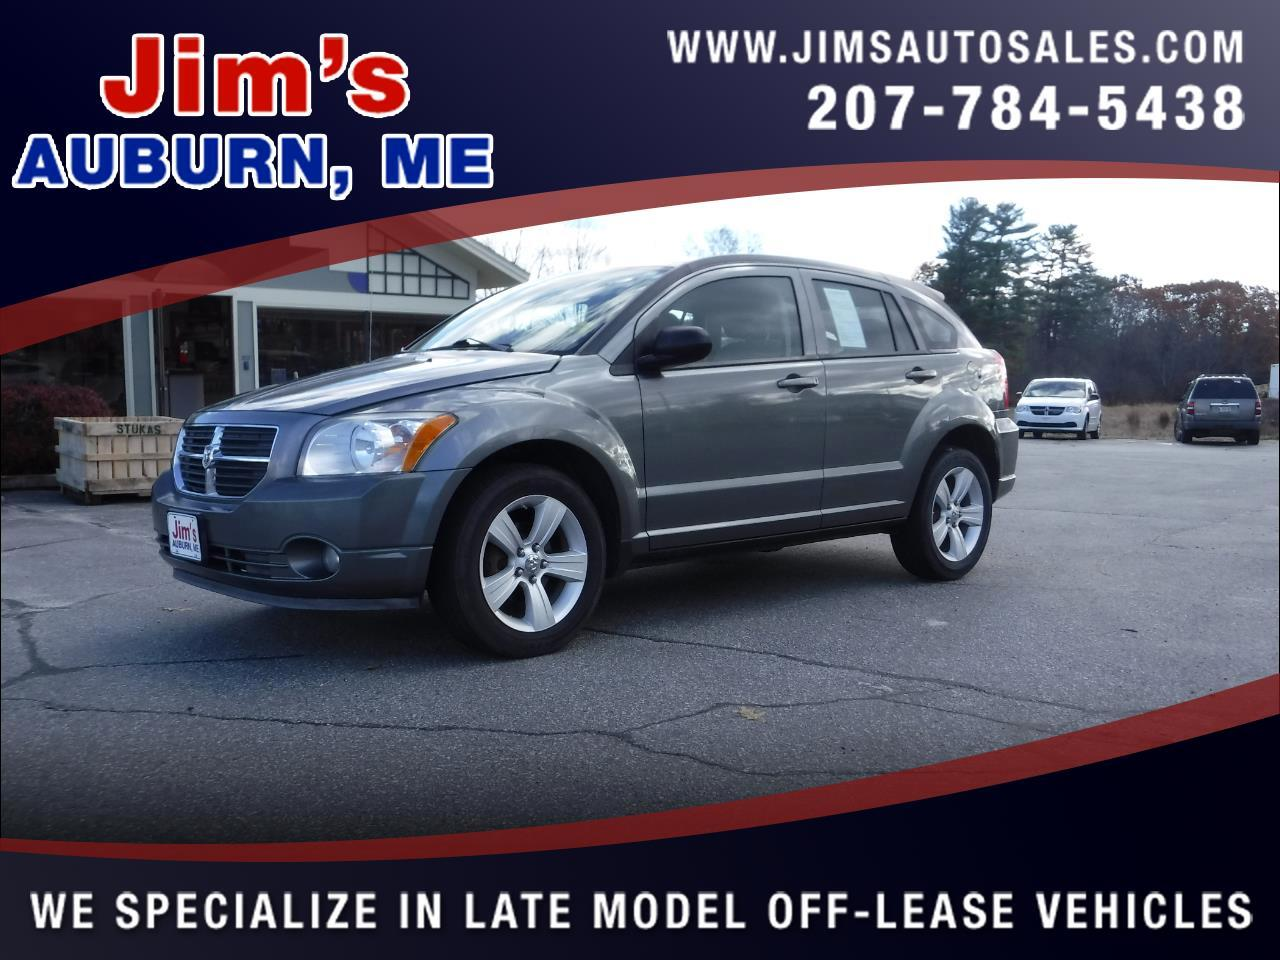 2011 Dodge Caliber 4dr HB Mainstreet